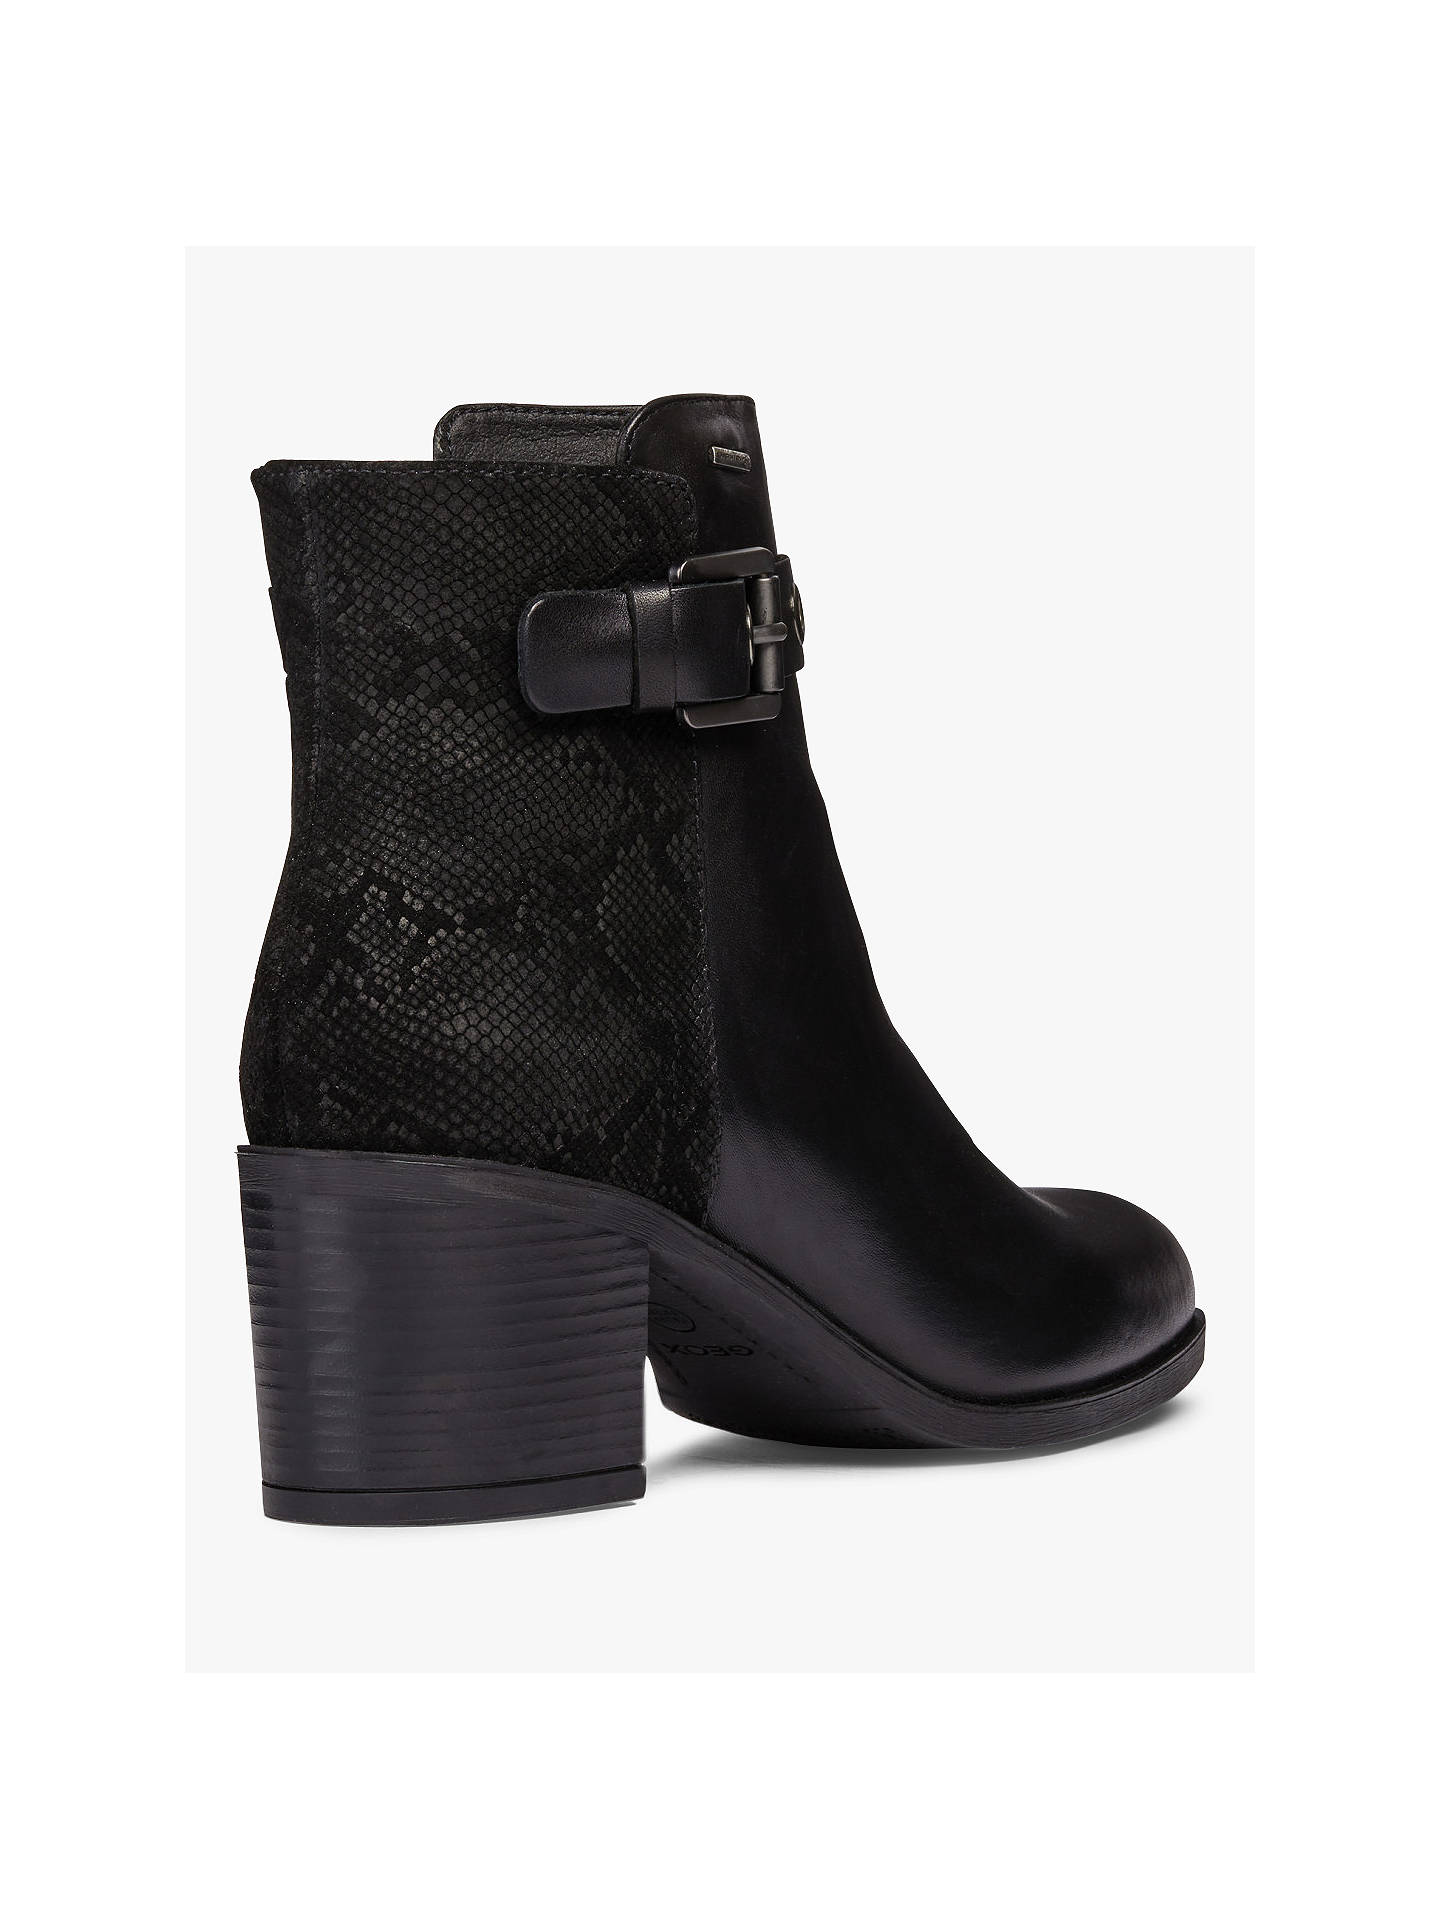 Geox Glynna Buckle Block Heeled Ankle Boots at John Lewis